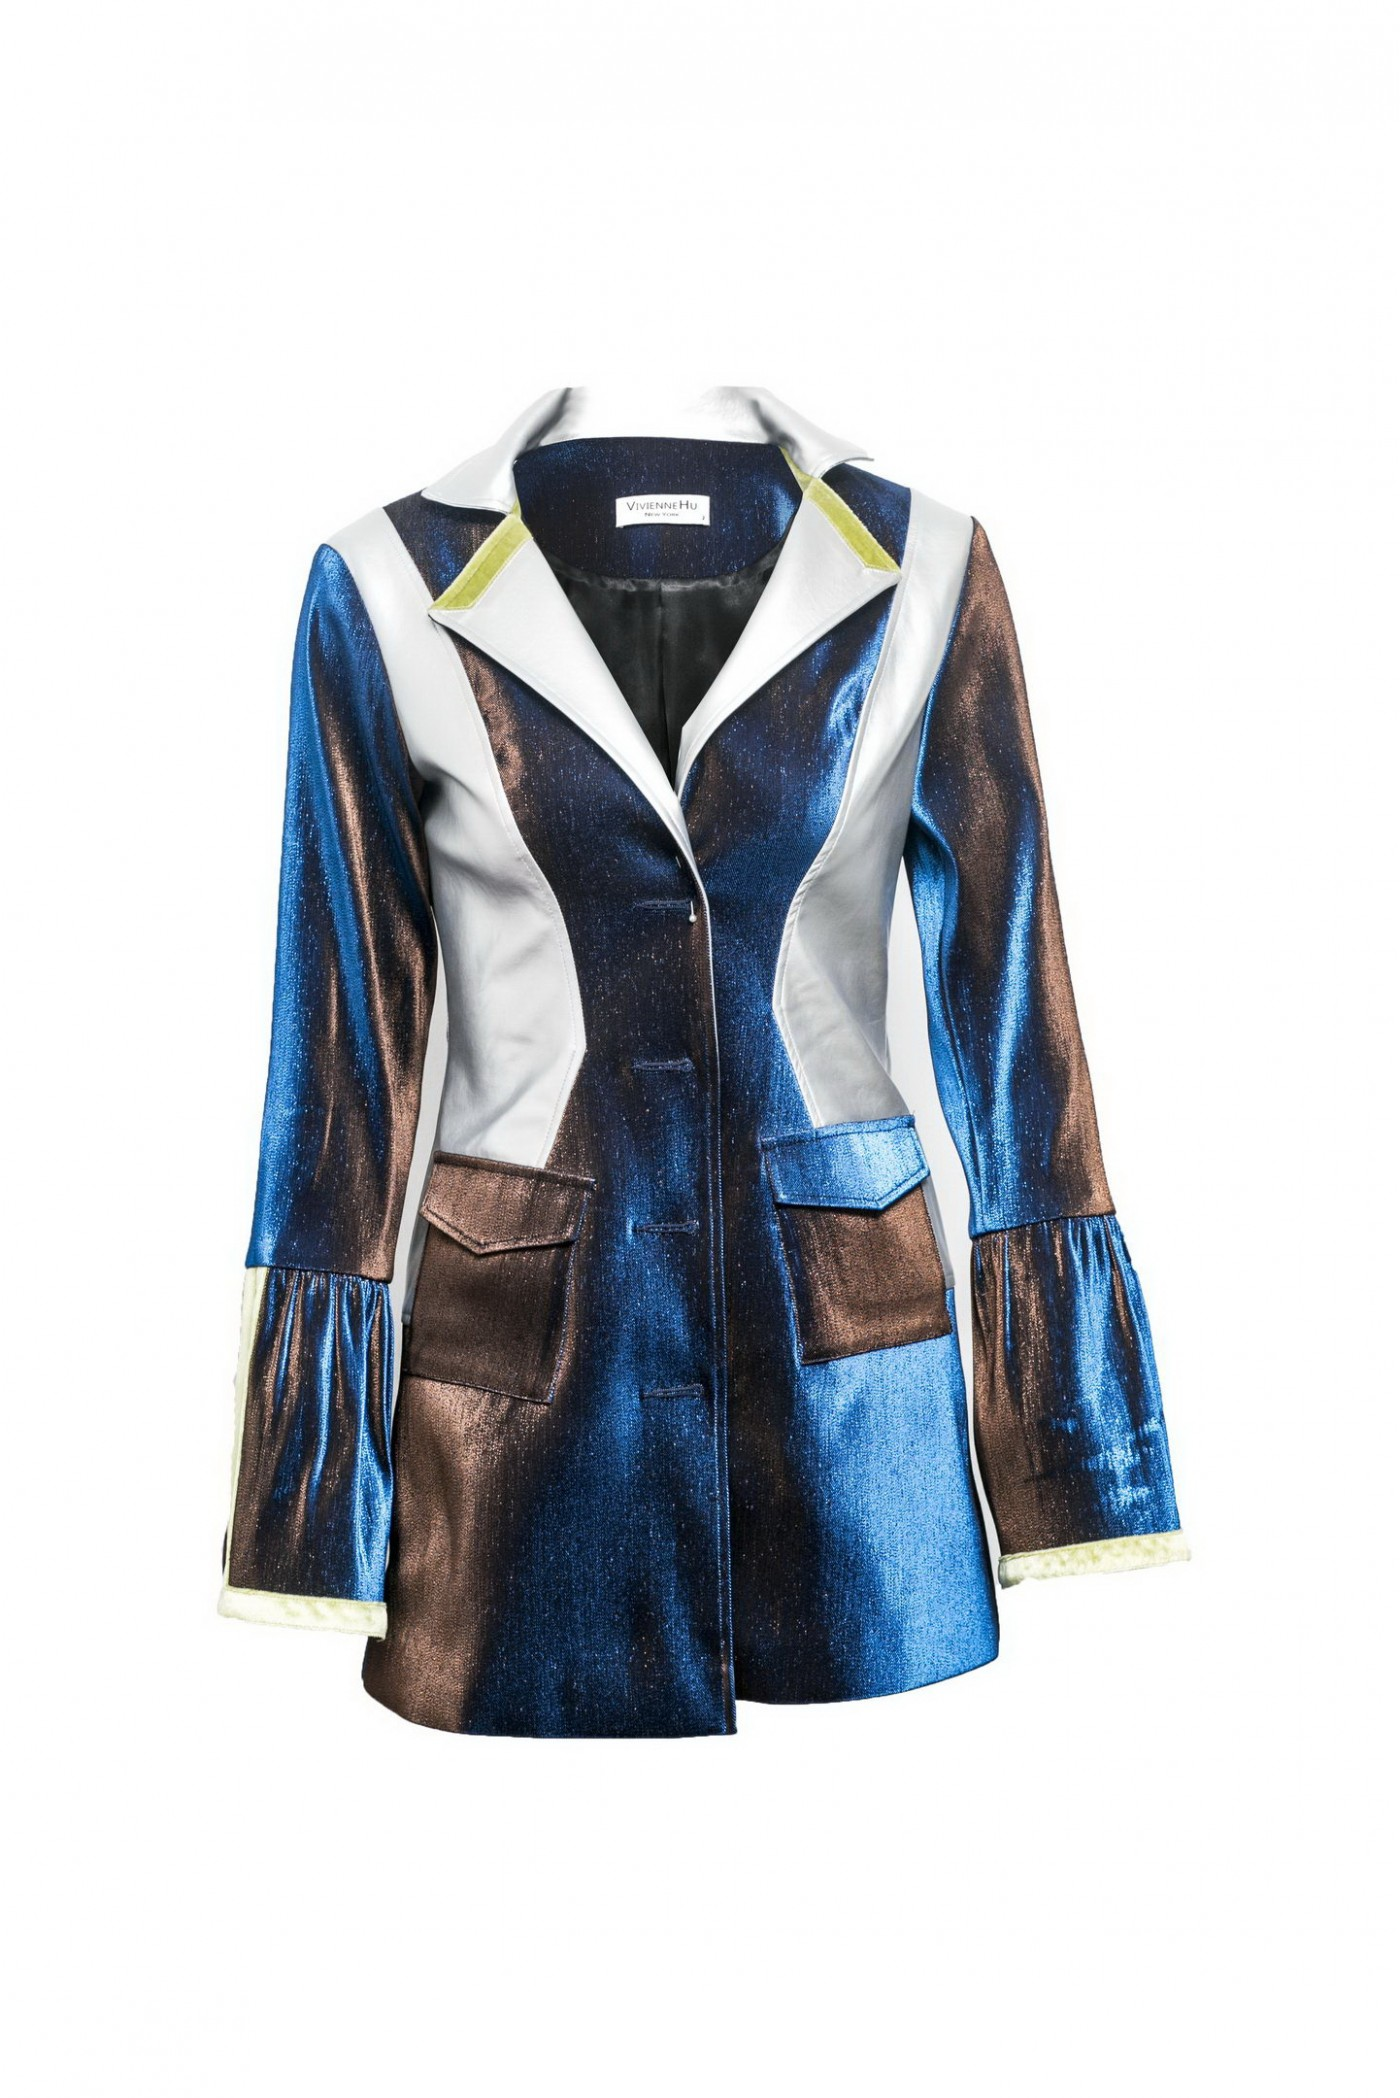 IRIDESCENT SUIT JACKET WITH LEATHER